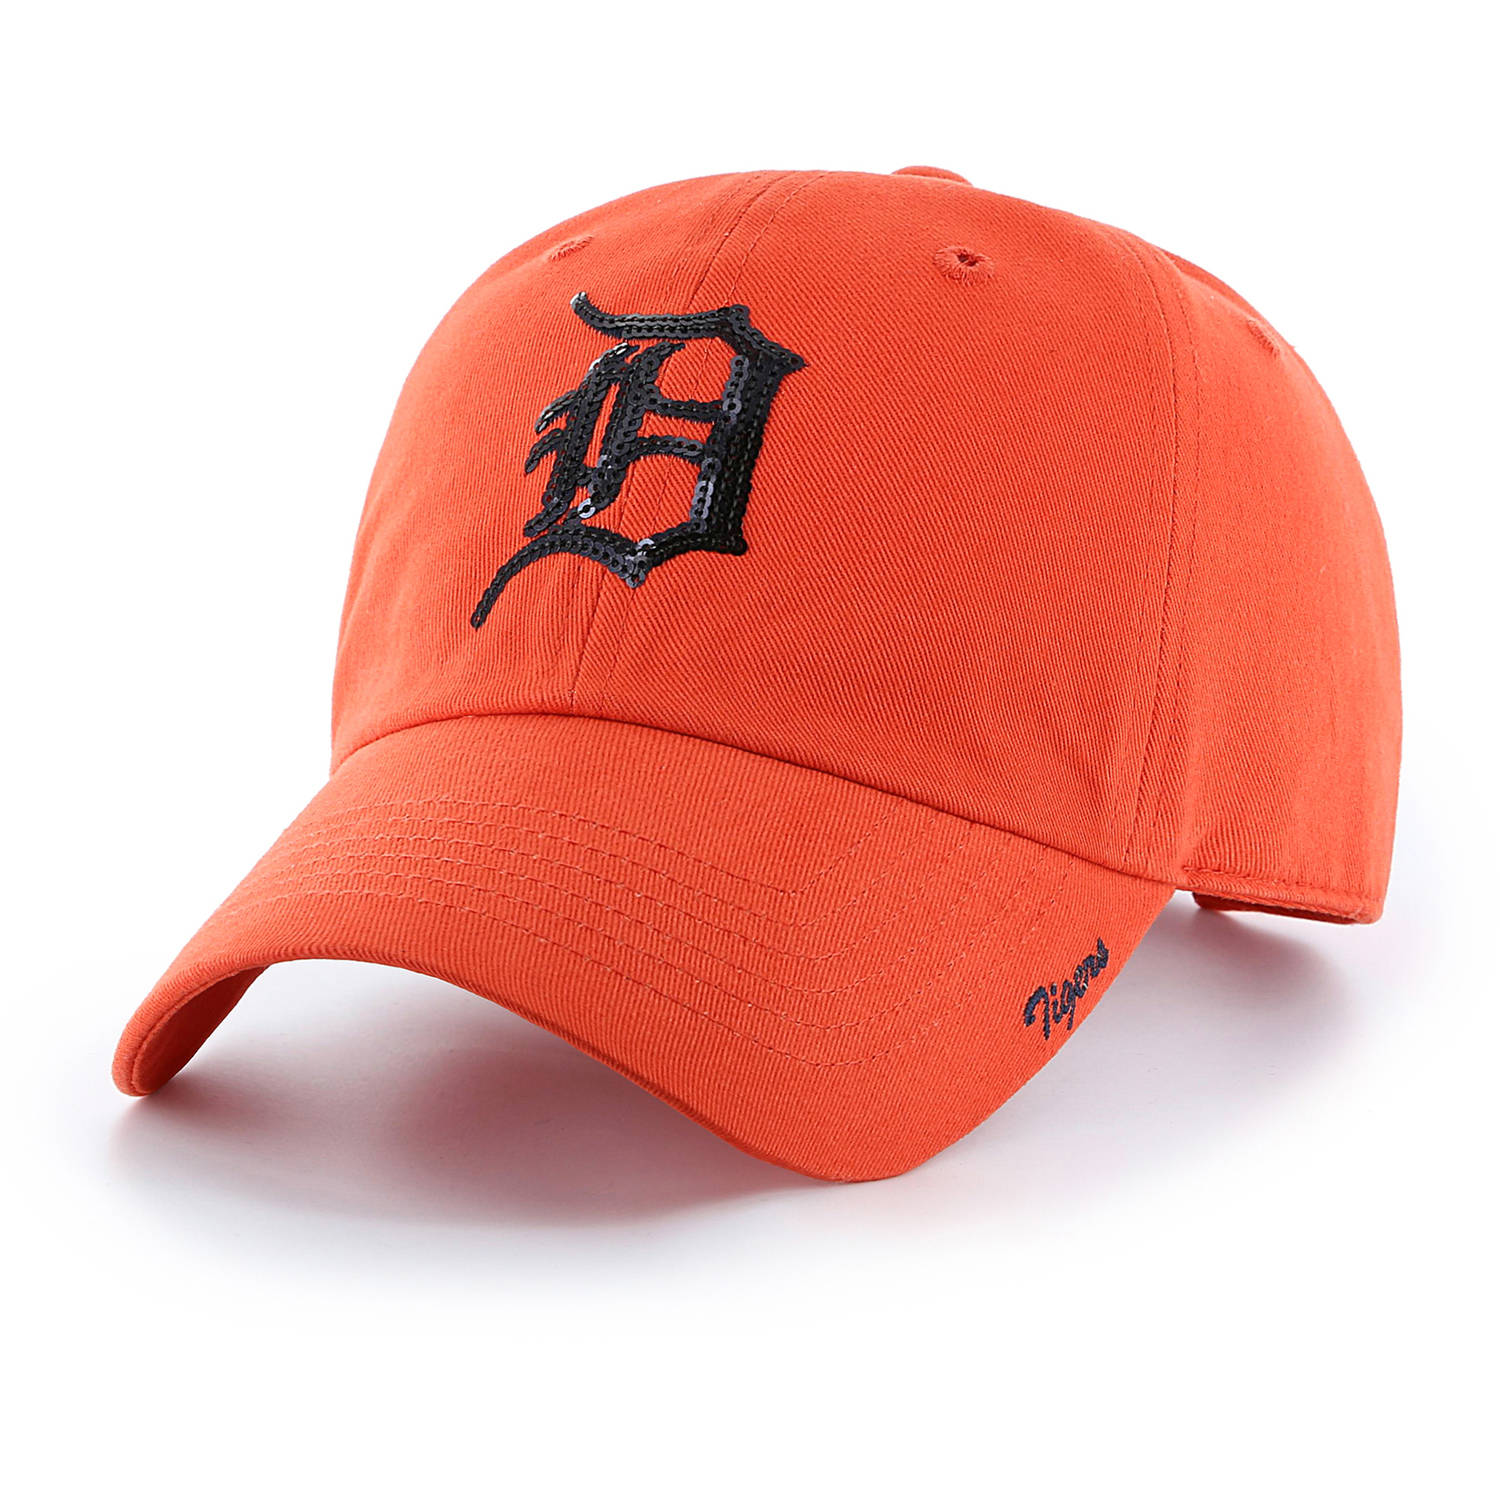 MLB Detroit Tigers Sparkle Women's Adjustable Cap Hat by Fan Favorite by Overstock